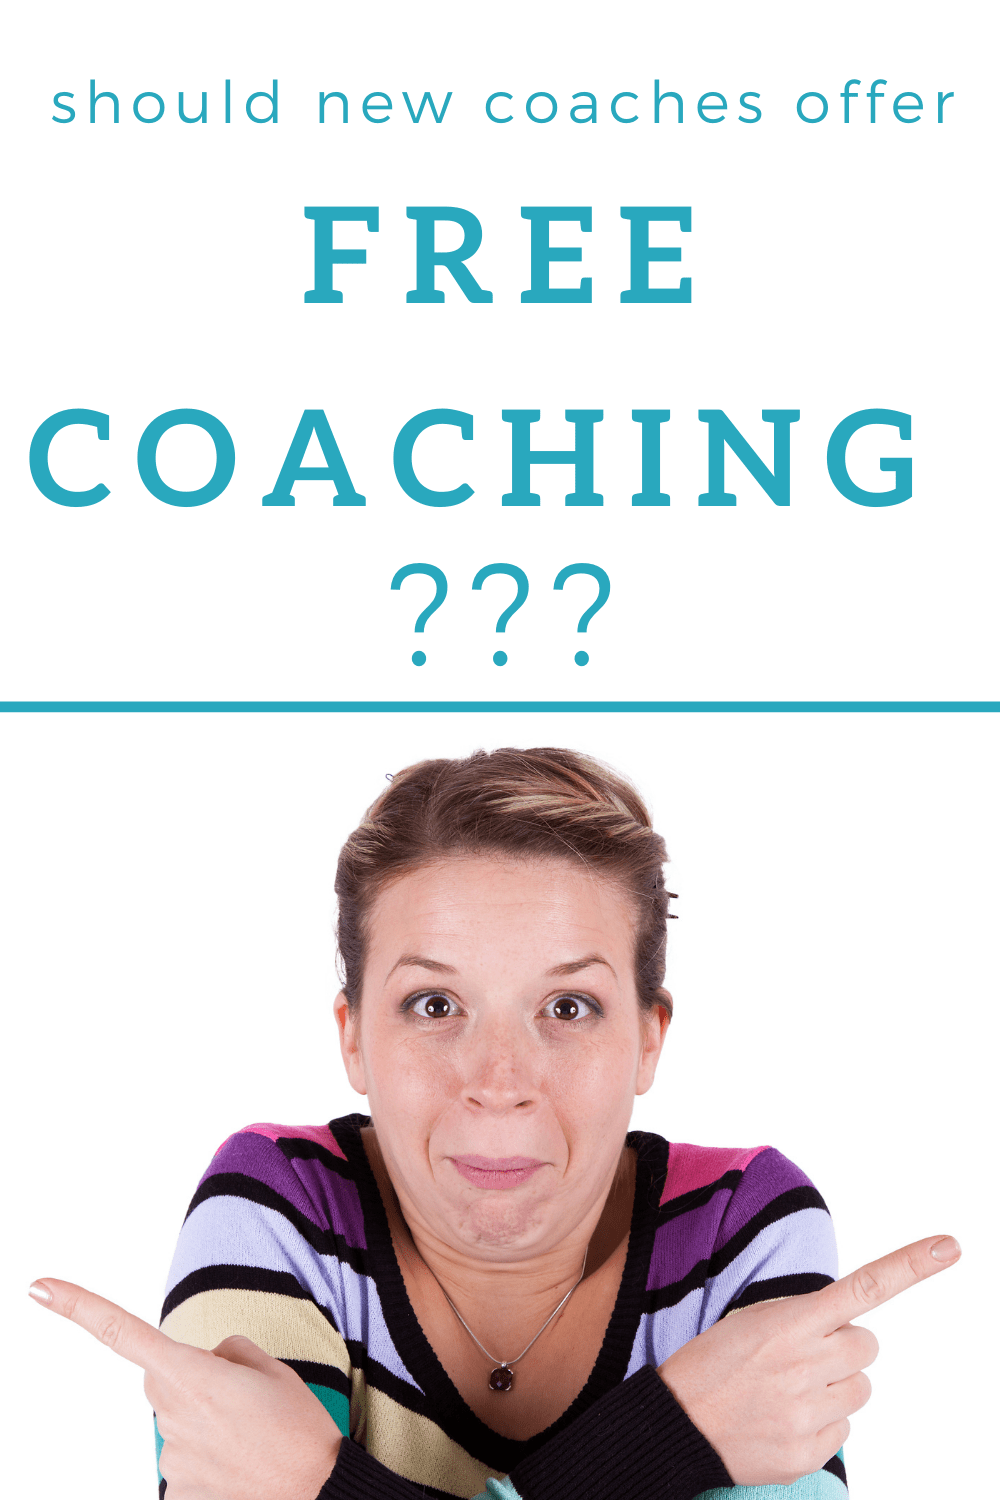 Should I offer free coaching sessions?